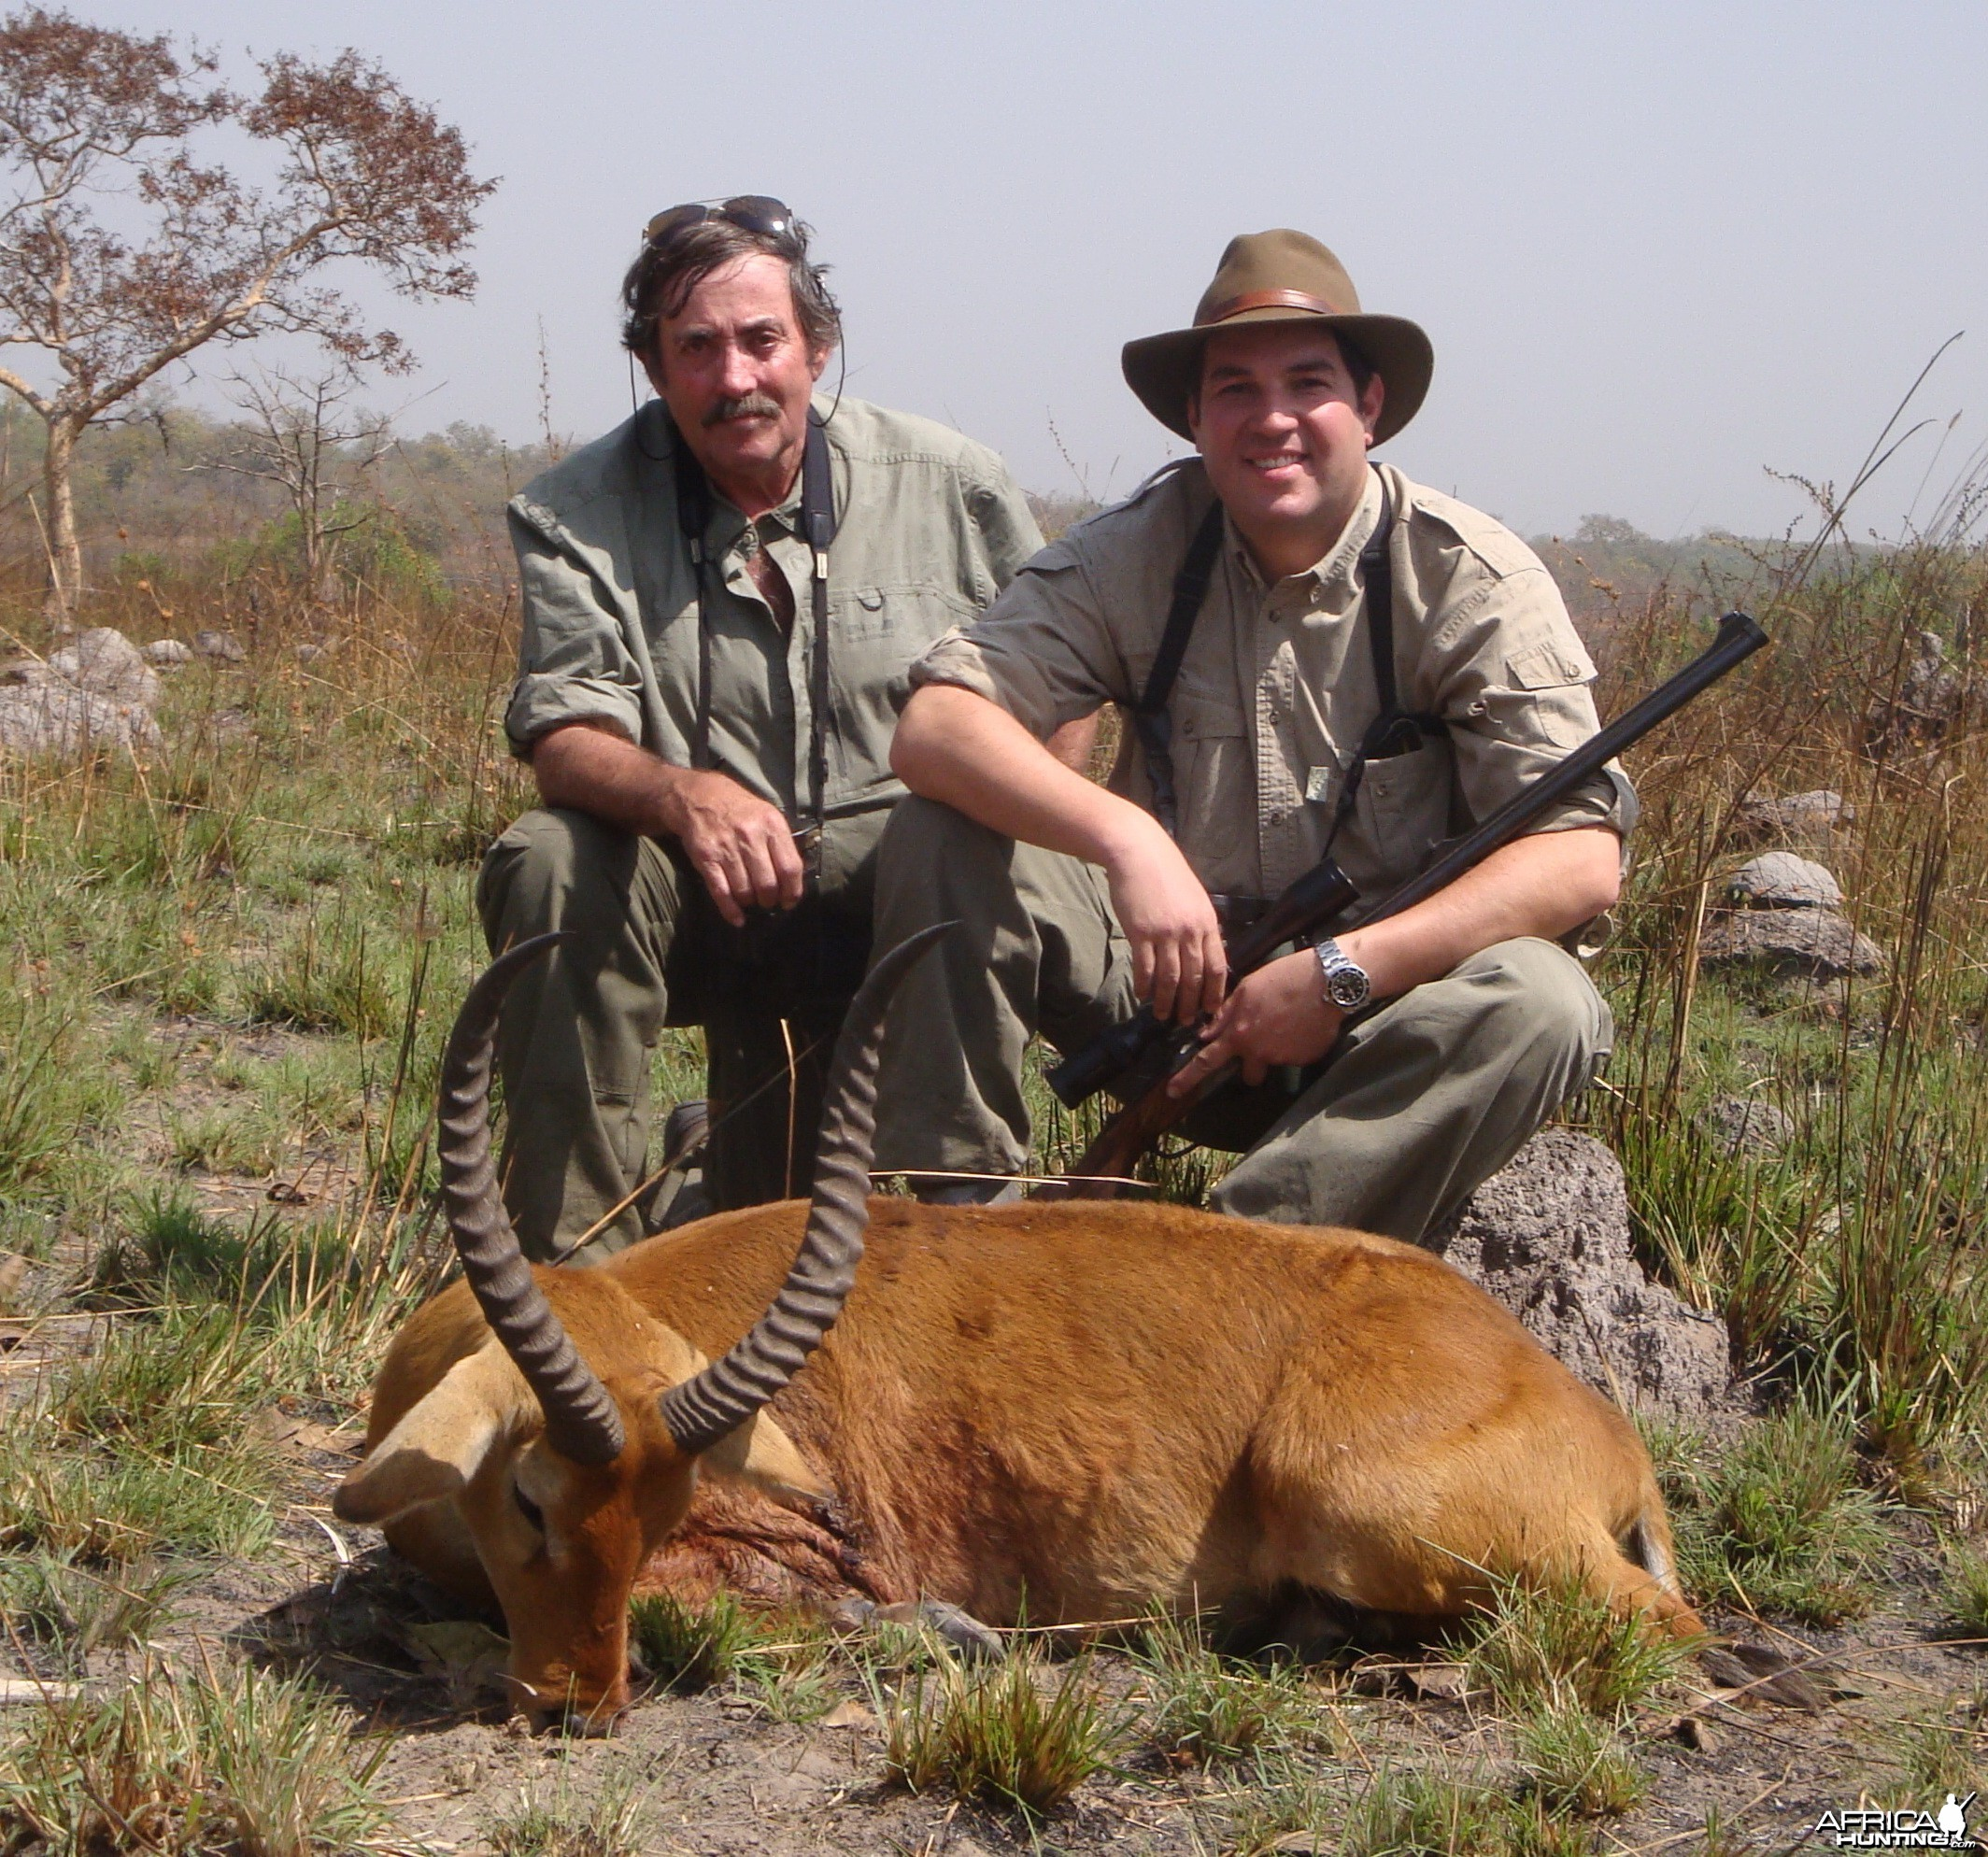 Western Kob/Buffon hunted in Central Africa with Club Faune